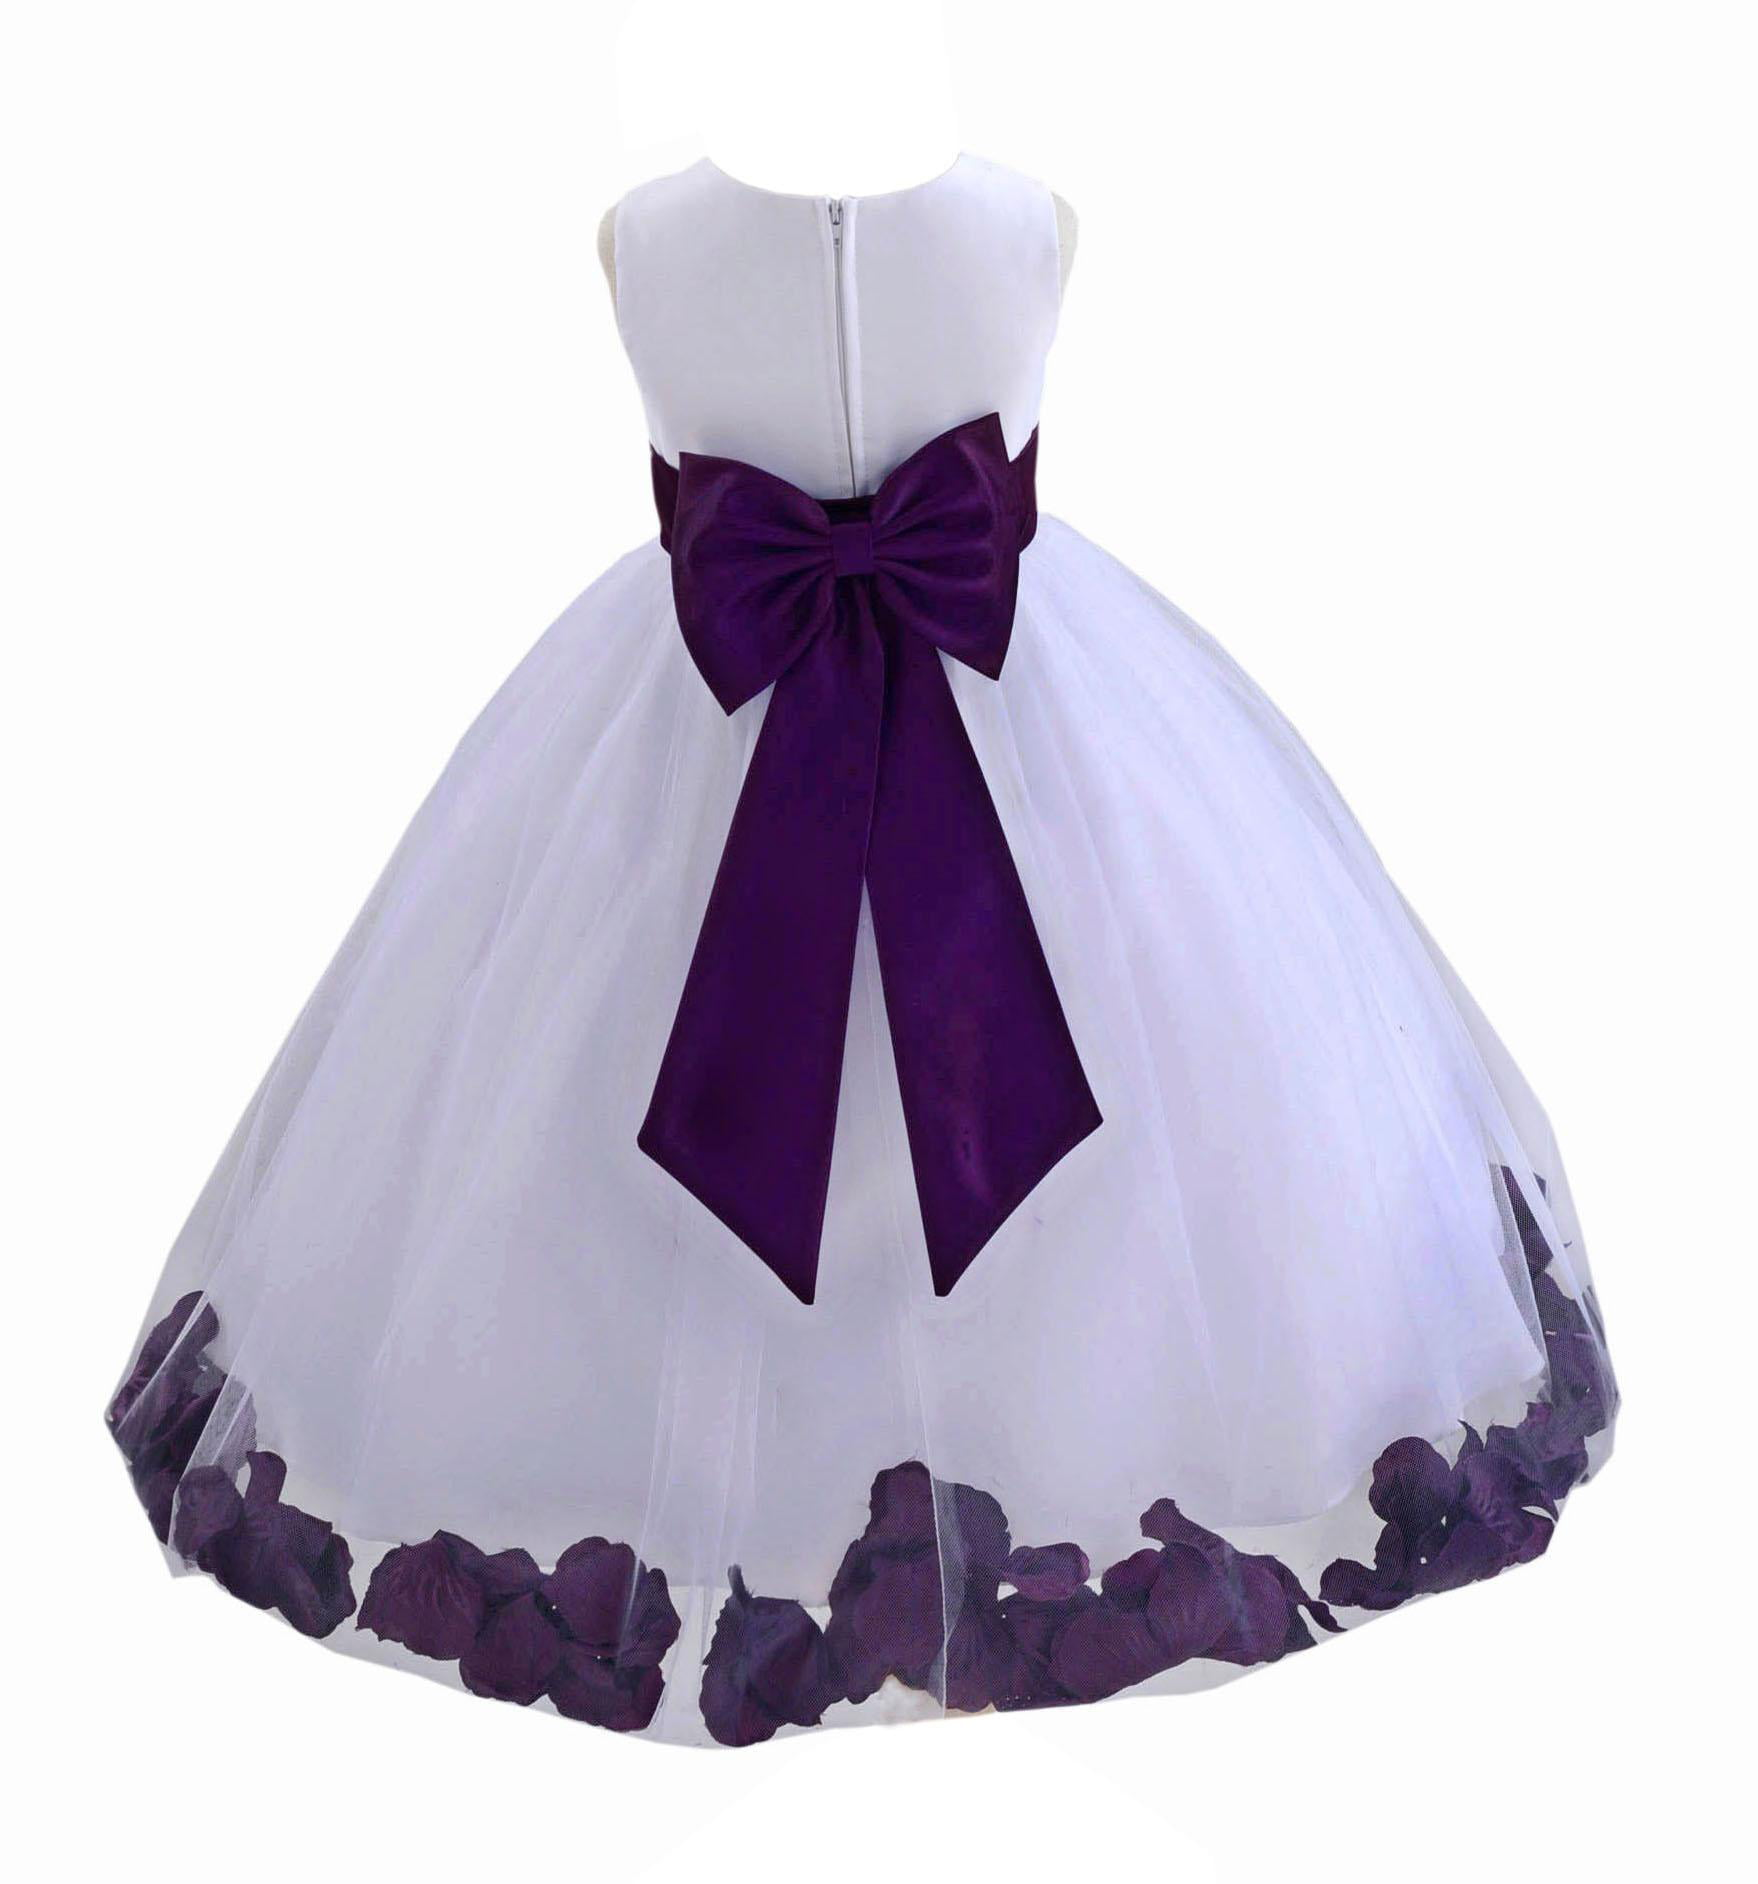 Ekidsbridal Wedding Pageant Rose Petals White Tulle Flower Girl